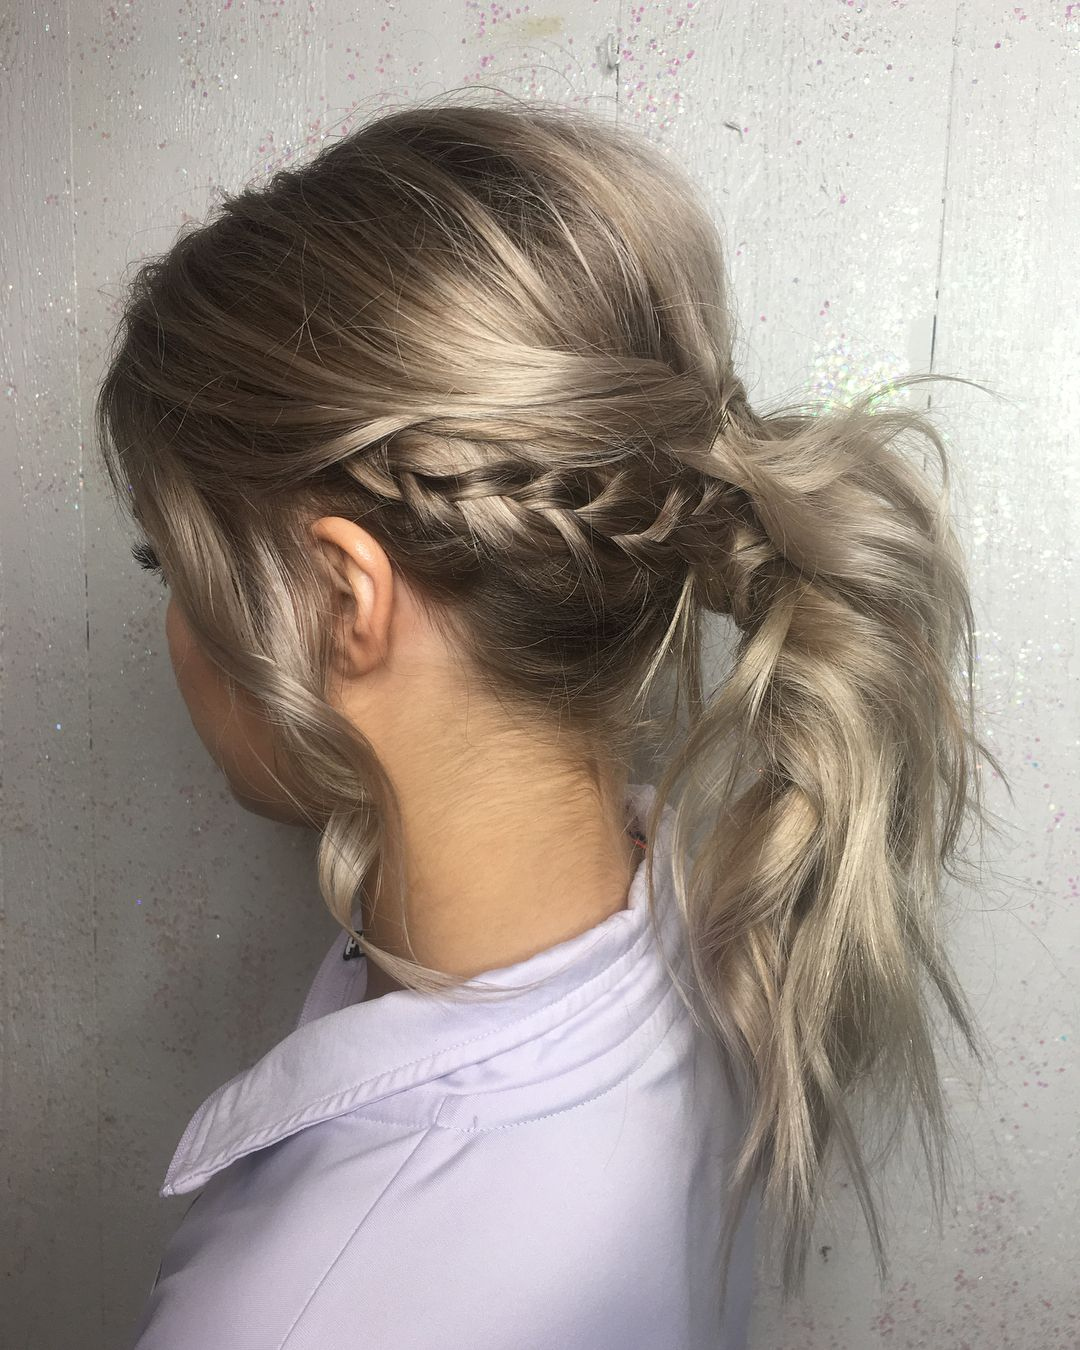 Prom hairud color also by me updo promhair heathstylist